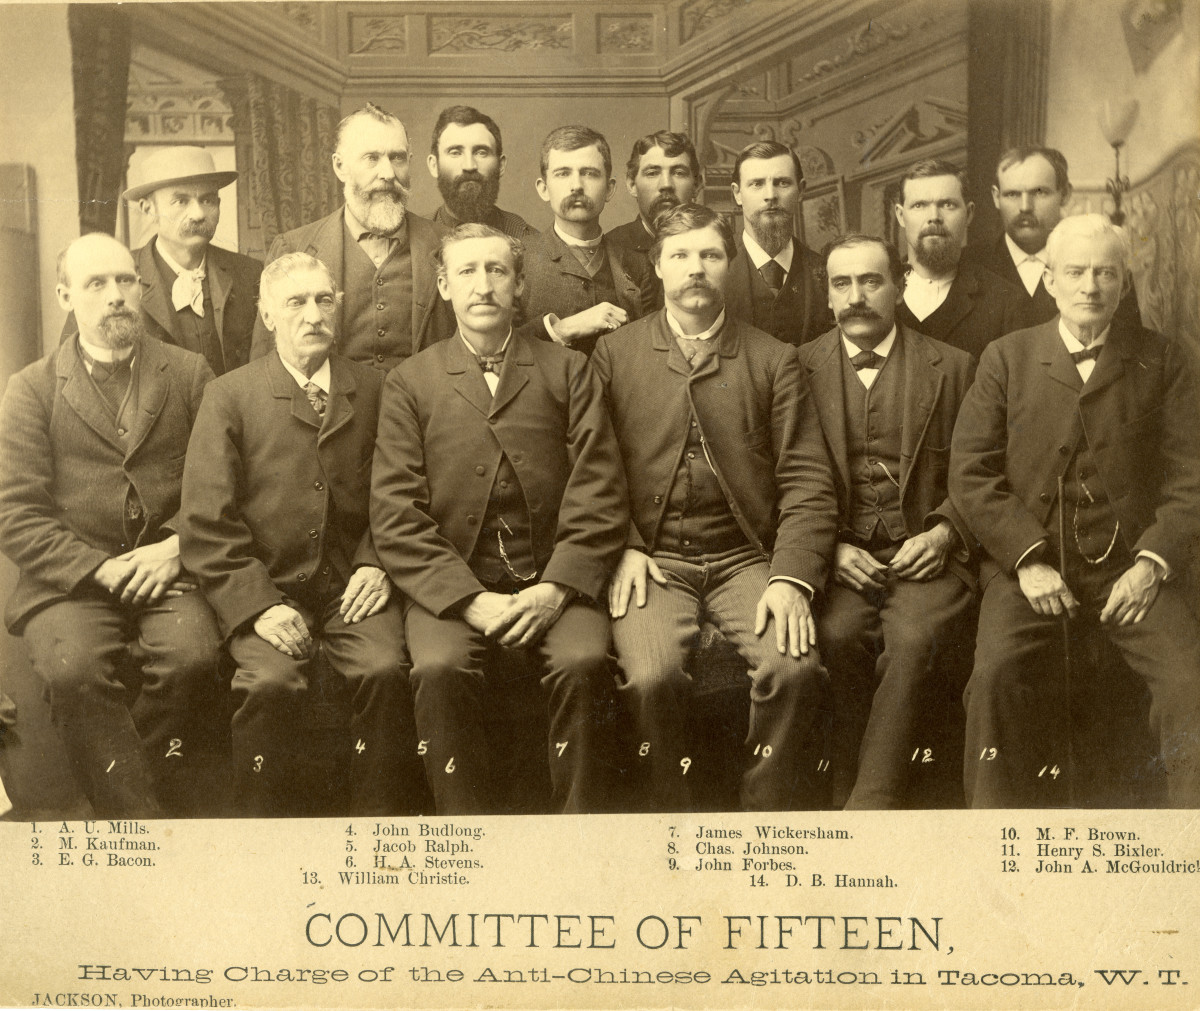 1885 group portrait of 14 members of the Committee of Fifteen, who were in charge of Anti-Chinese Agitation in Tacoma, Pierce County, Washington Territory.